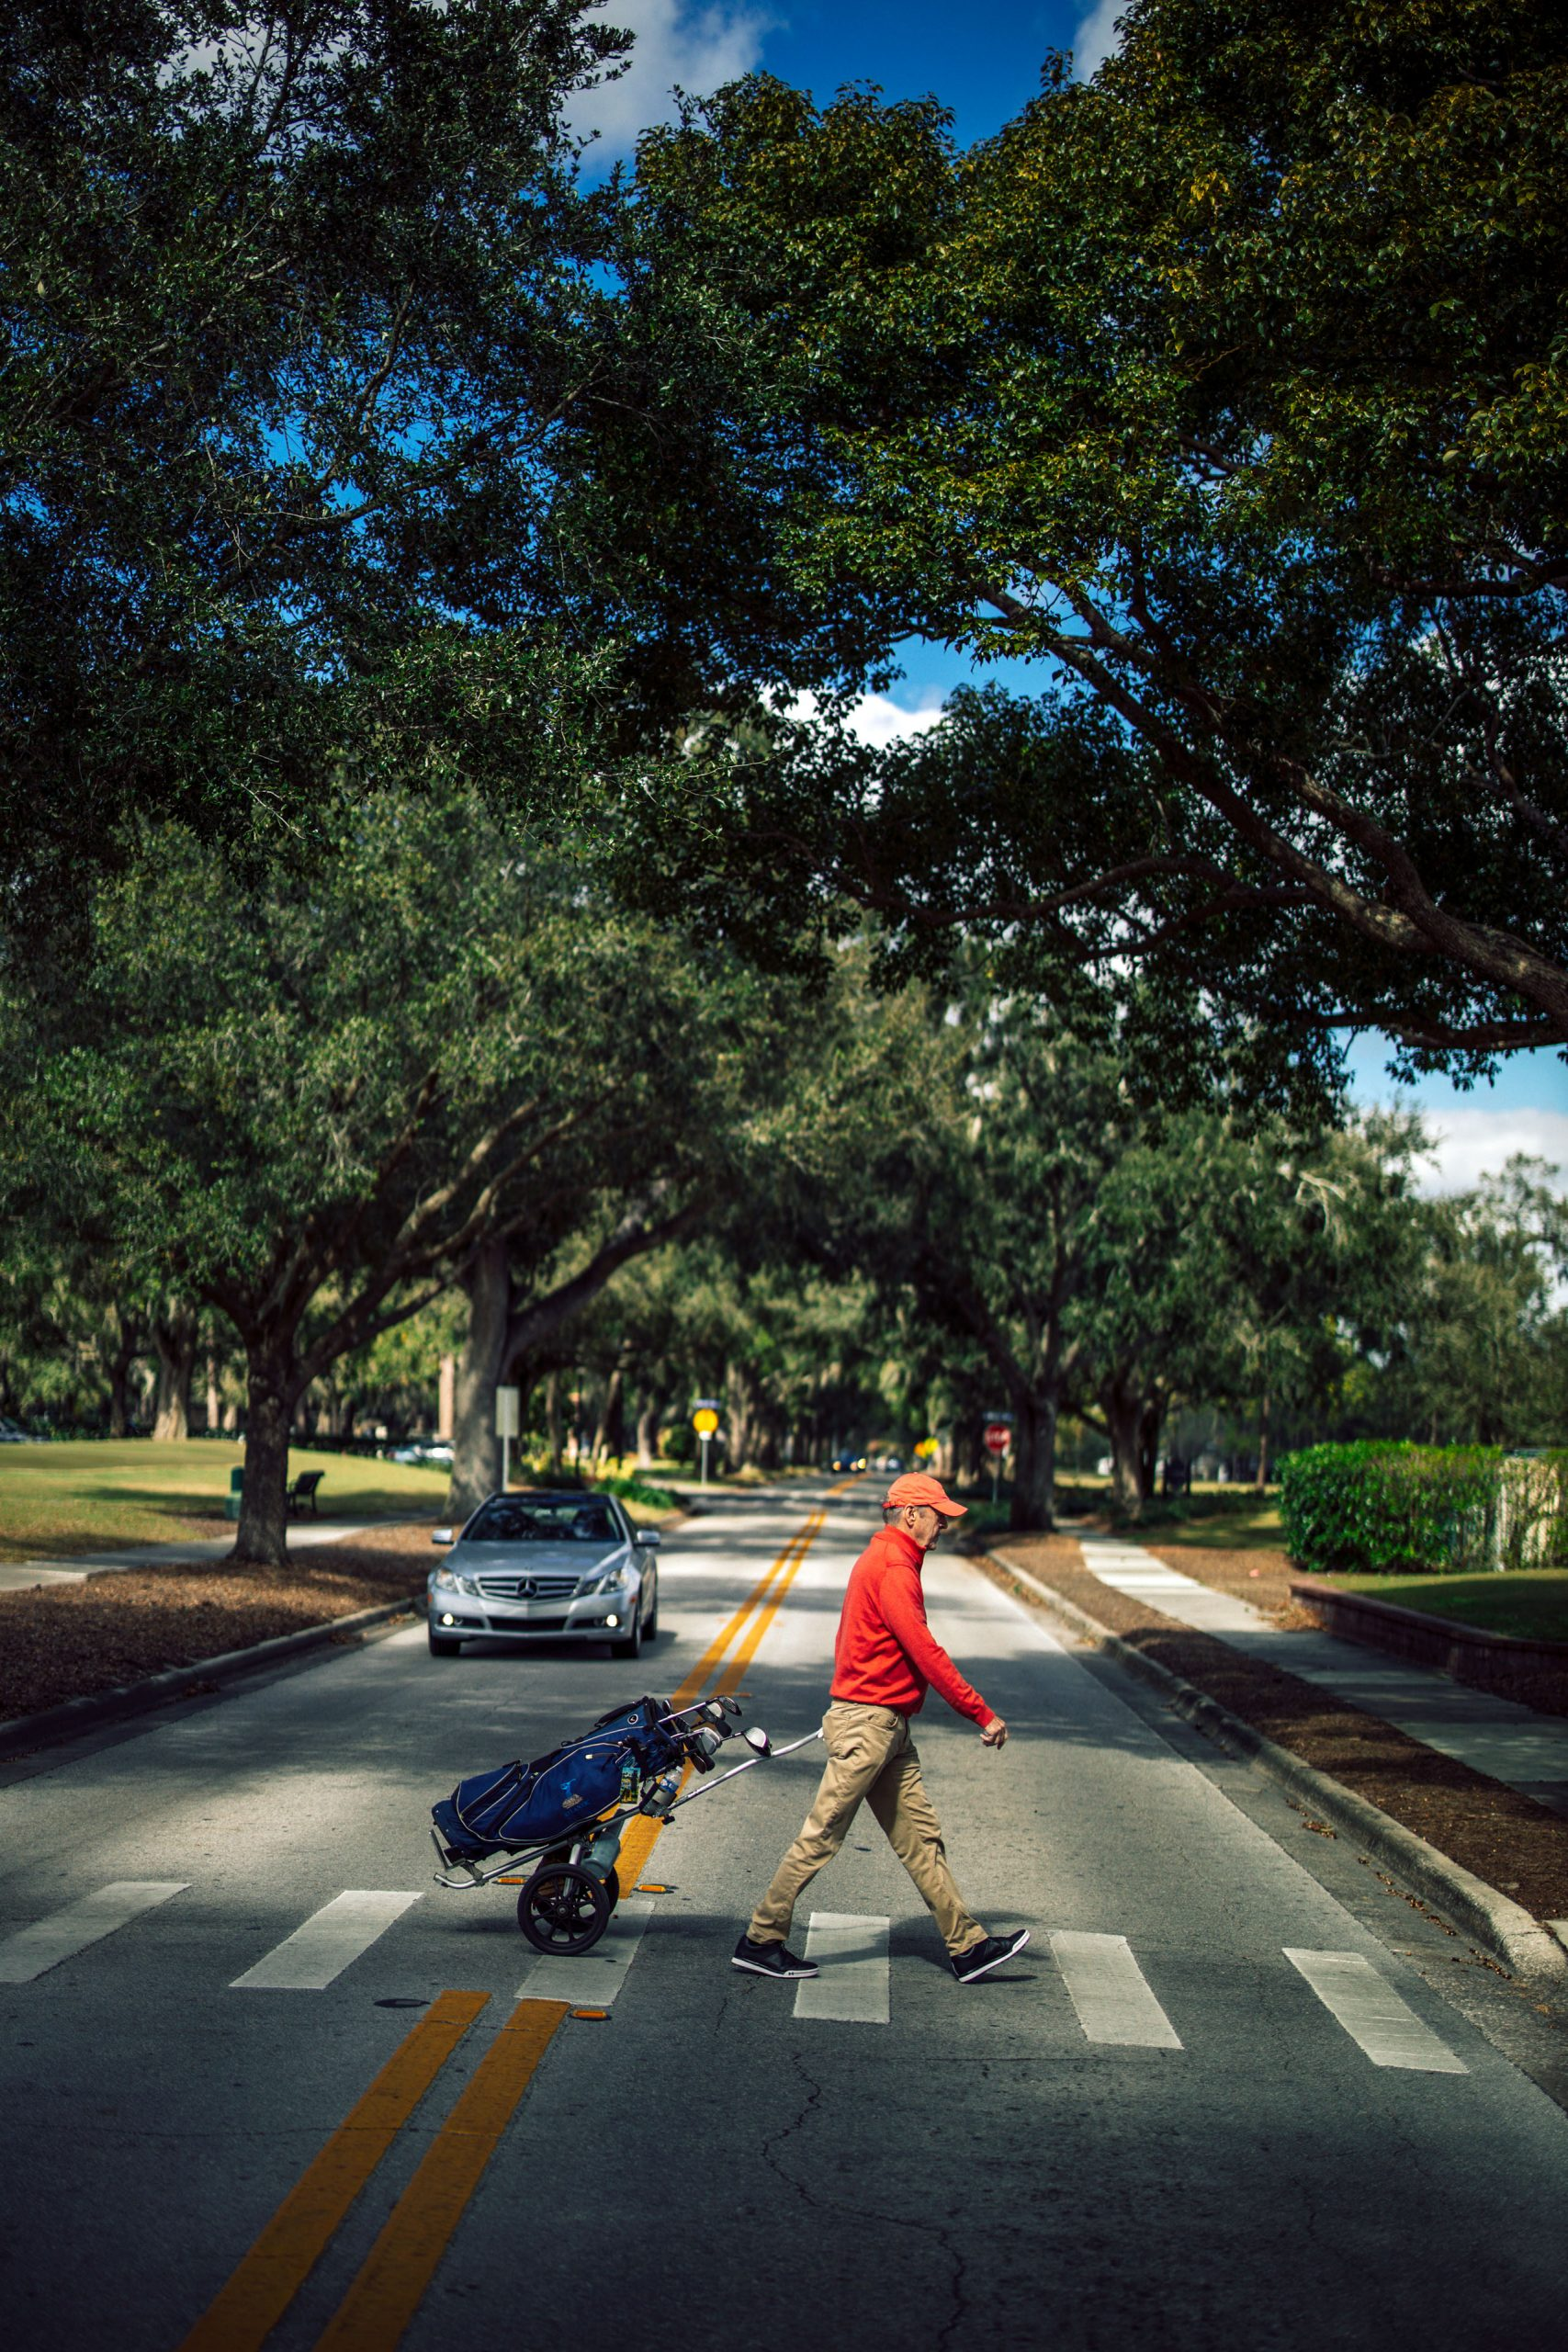 Billy Collins crossing a street, Winter Park 9